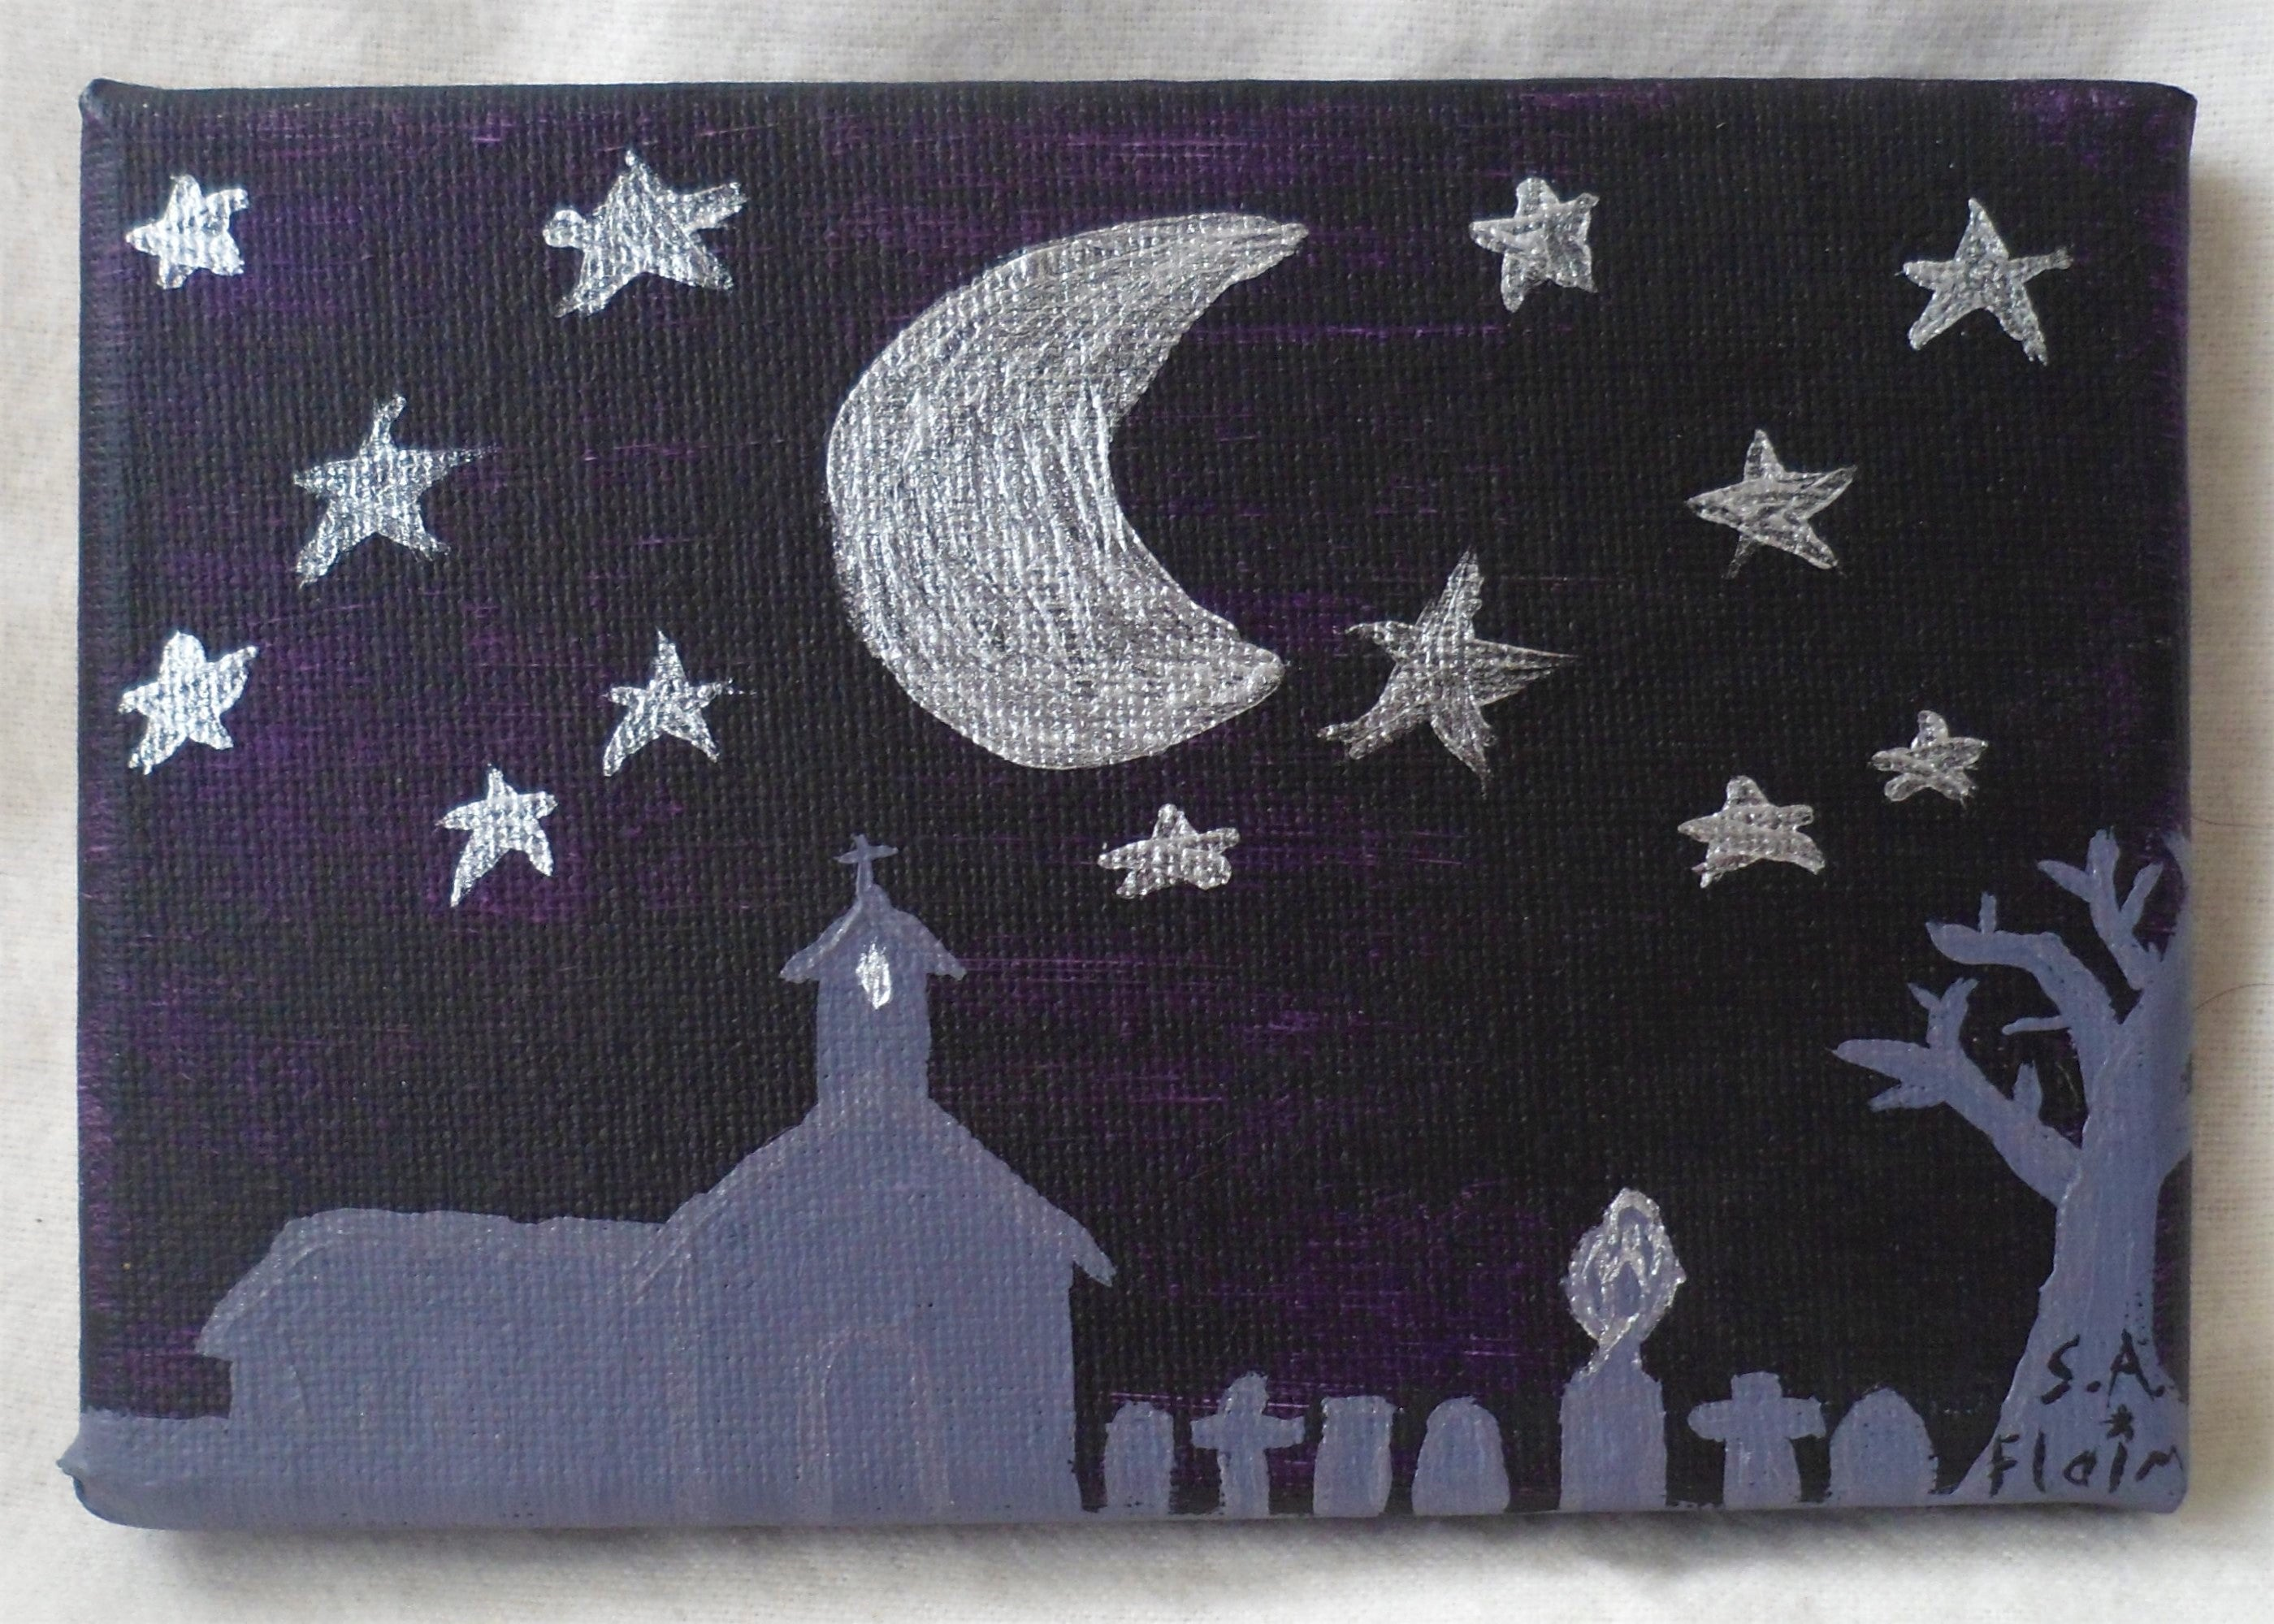 Church in Moonlight by S.A.Flaim - Tully Crafts